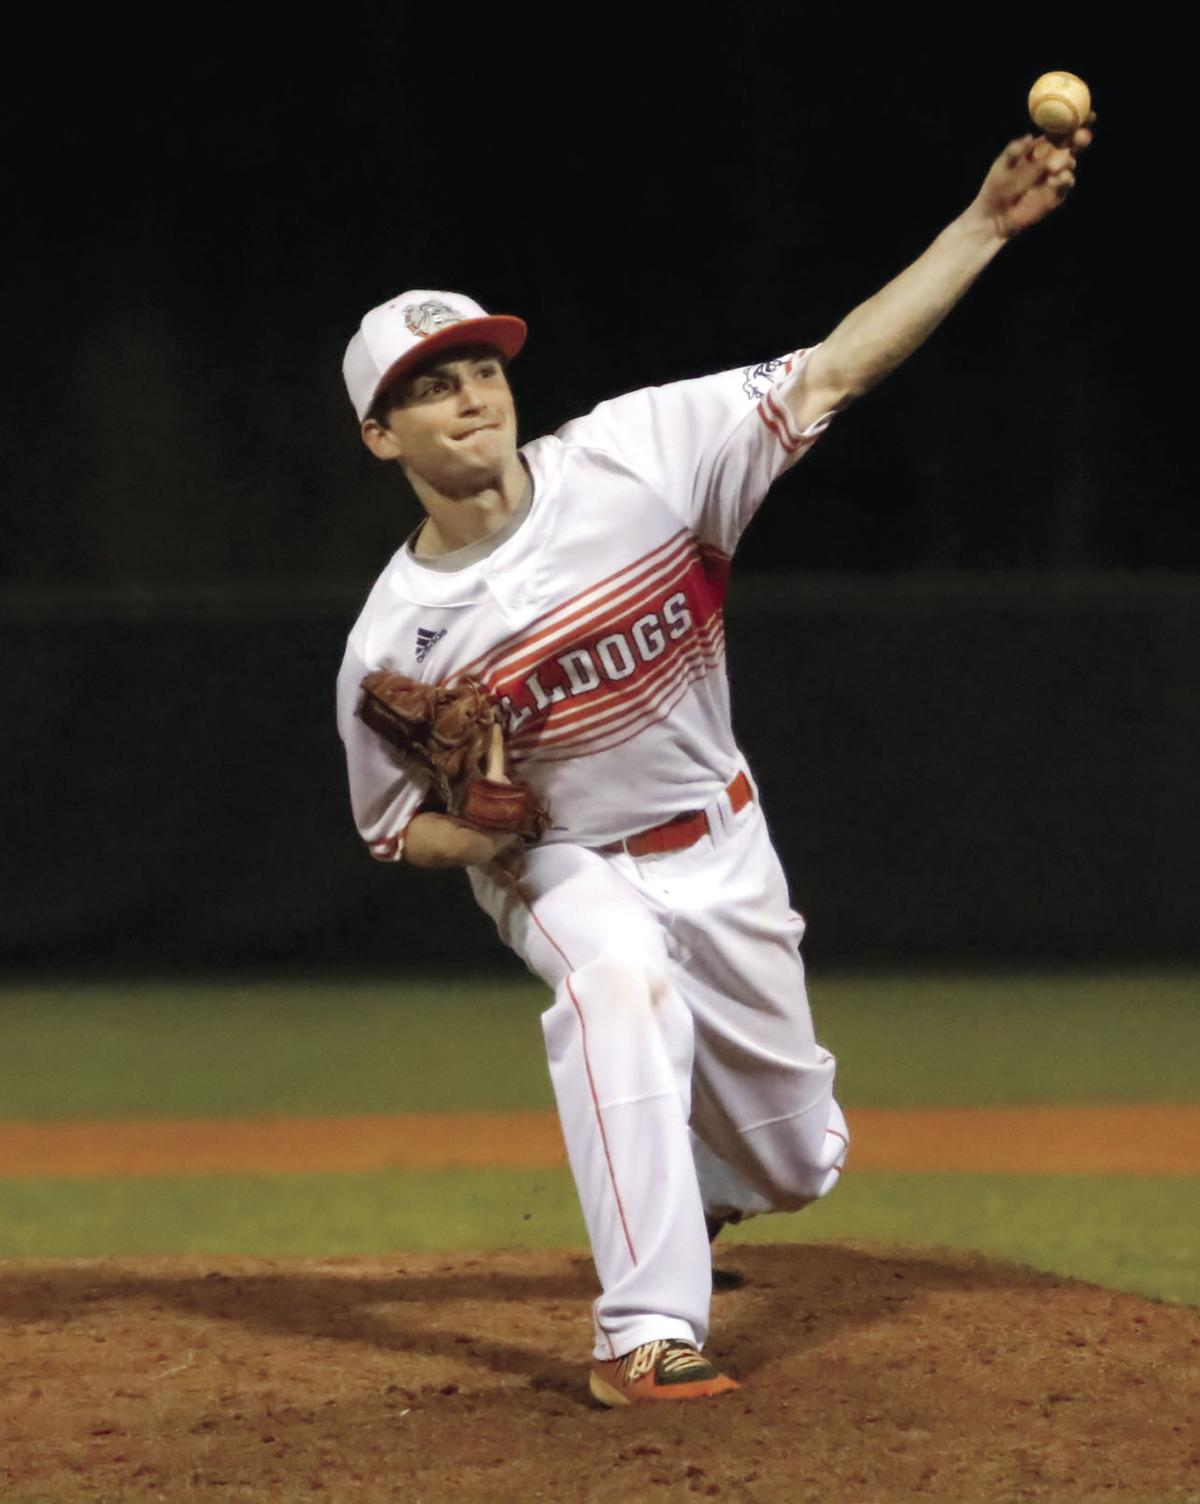 TYLER BRINKLEY pitches